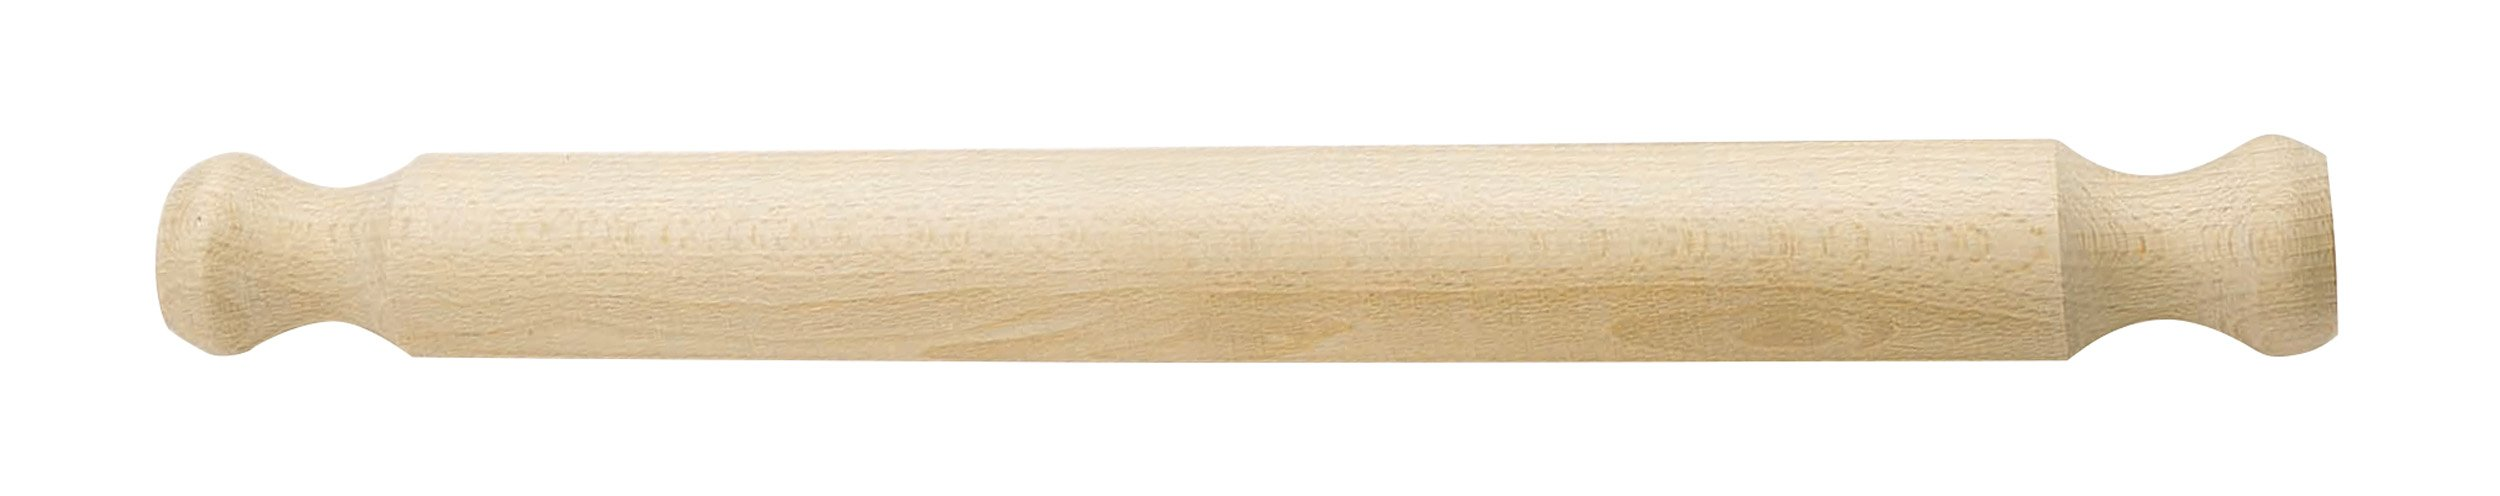 40cm Beech Wood Solid Rolling Pin